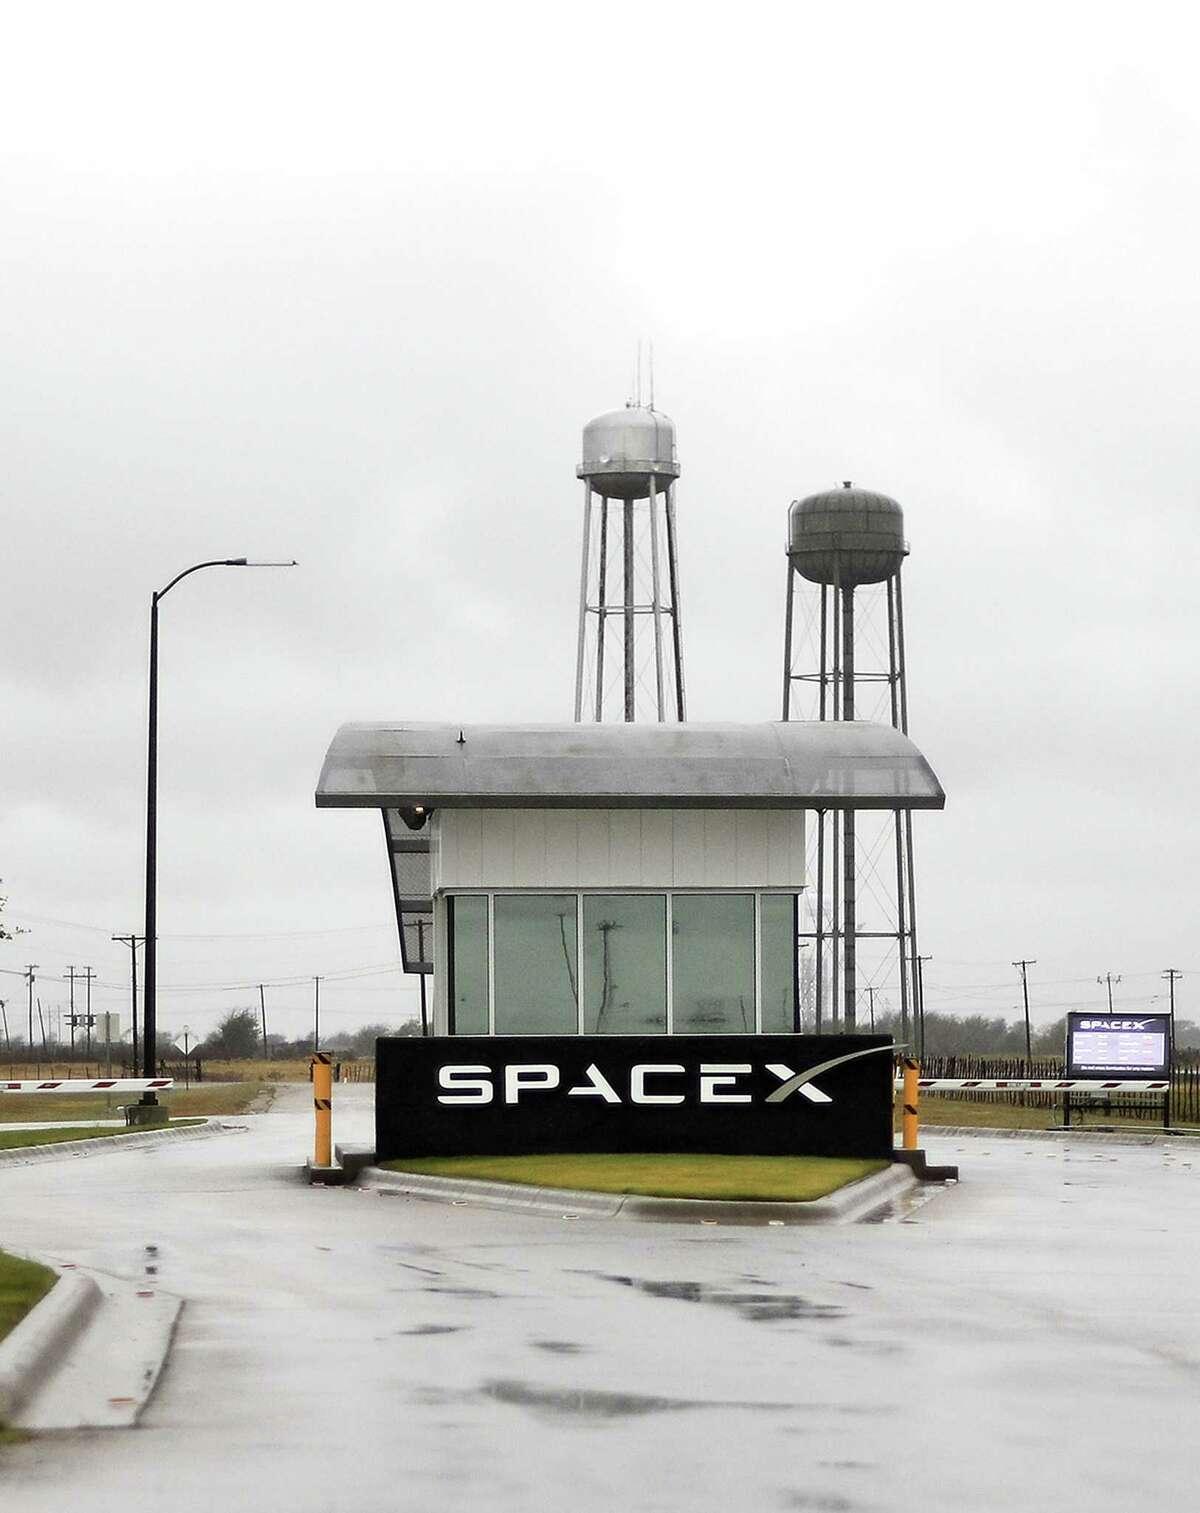 As the commercial space industry assumes a larger role in the evolving national space race, one of its top private companies is finding military veterans an integral part of its workforce. At the SpaceX test facility in McGregor, a third of more than 550 full-timers have military backgrounds. Employees say they are used to mission-driven tasks.